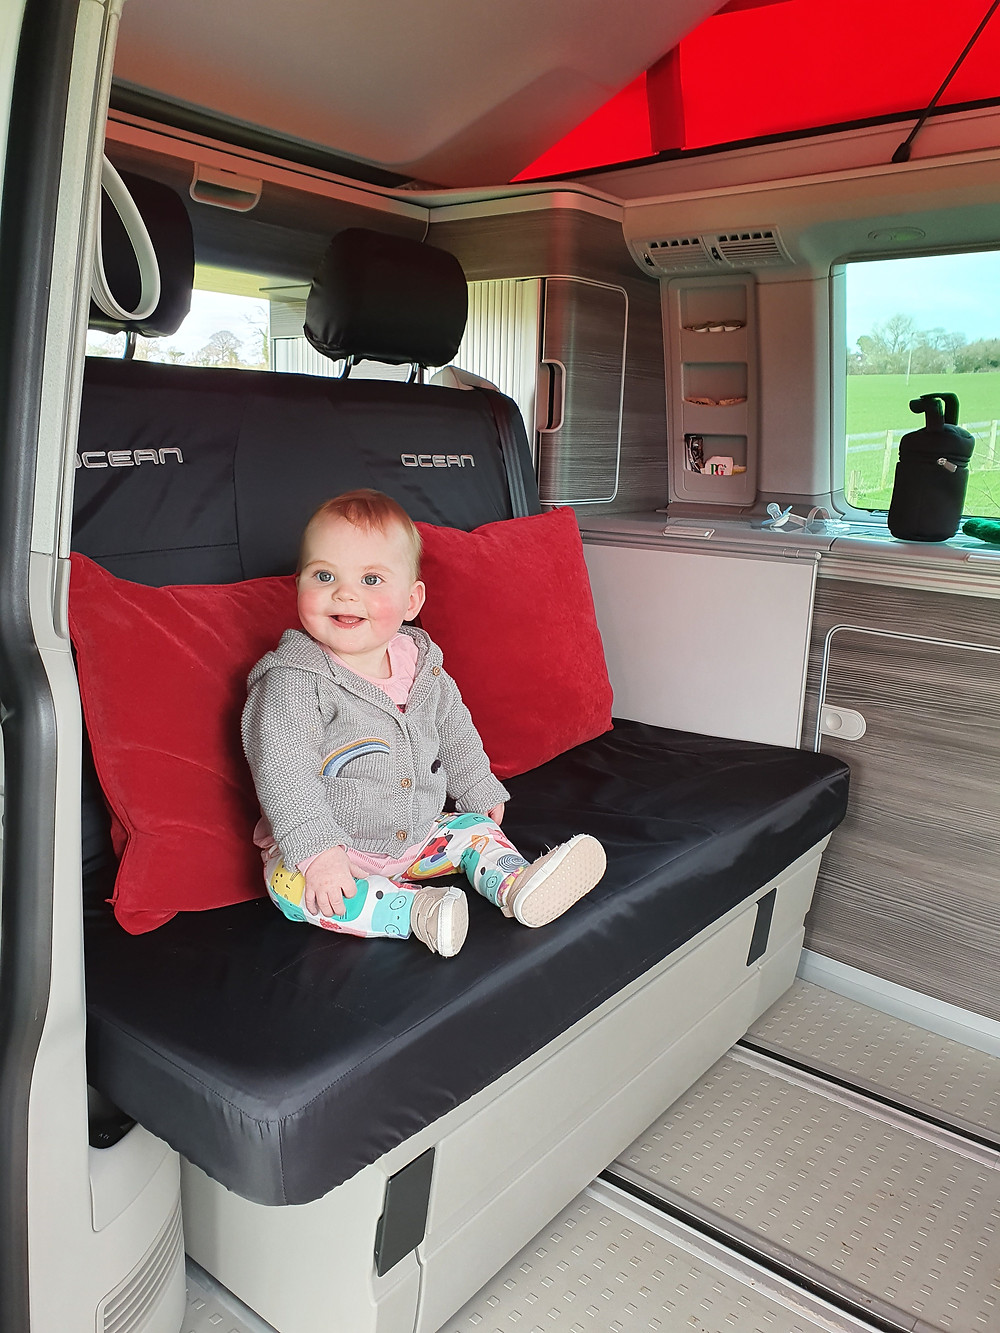 Baby sitting in a campervan